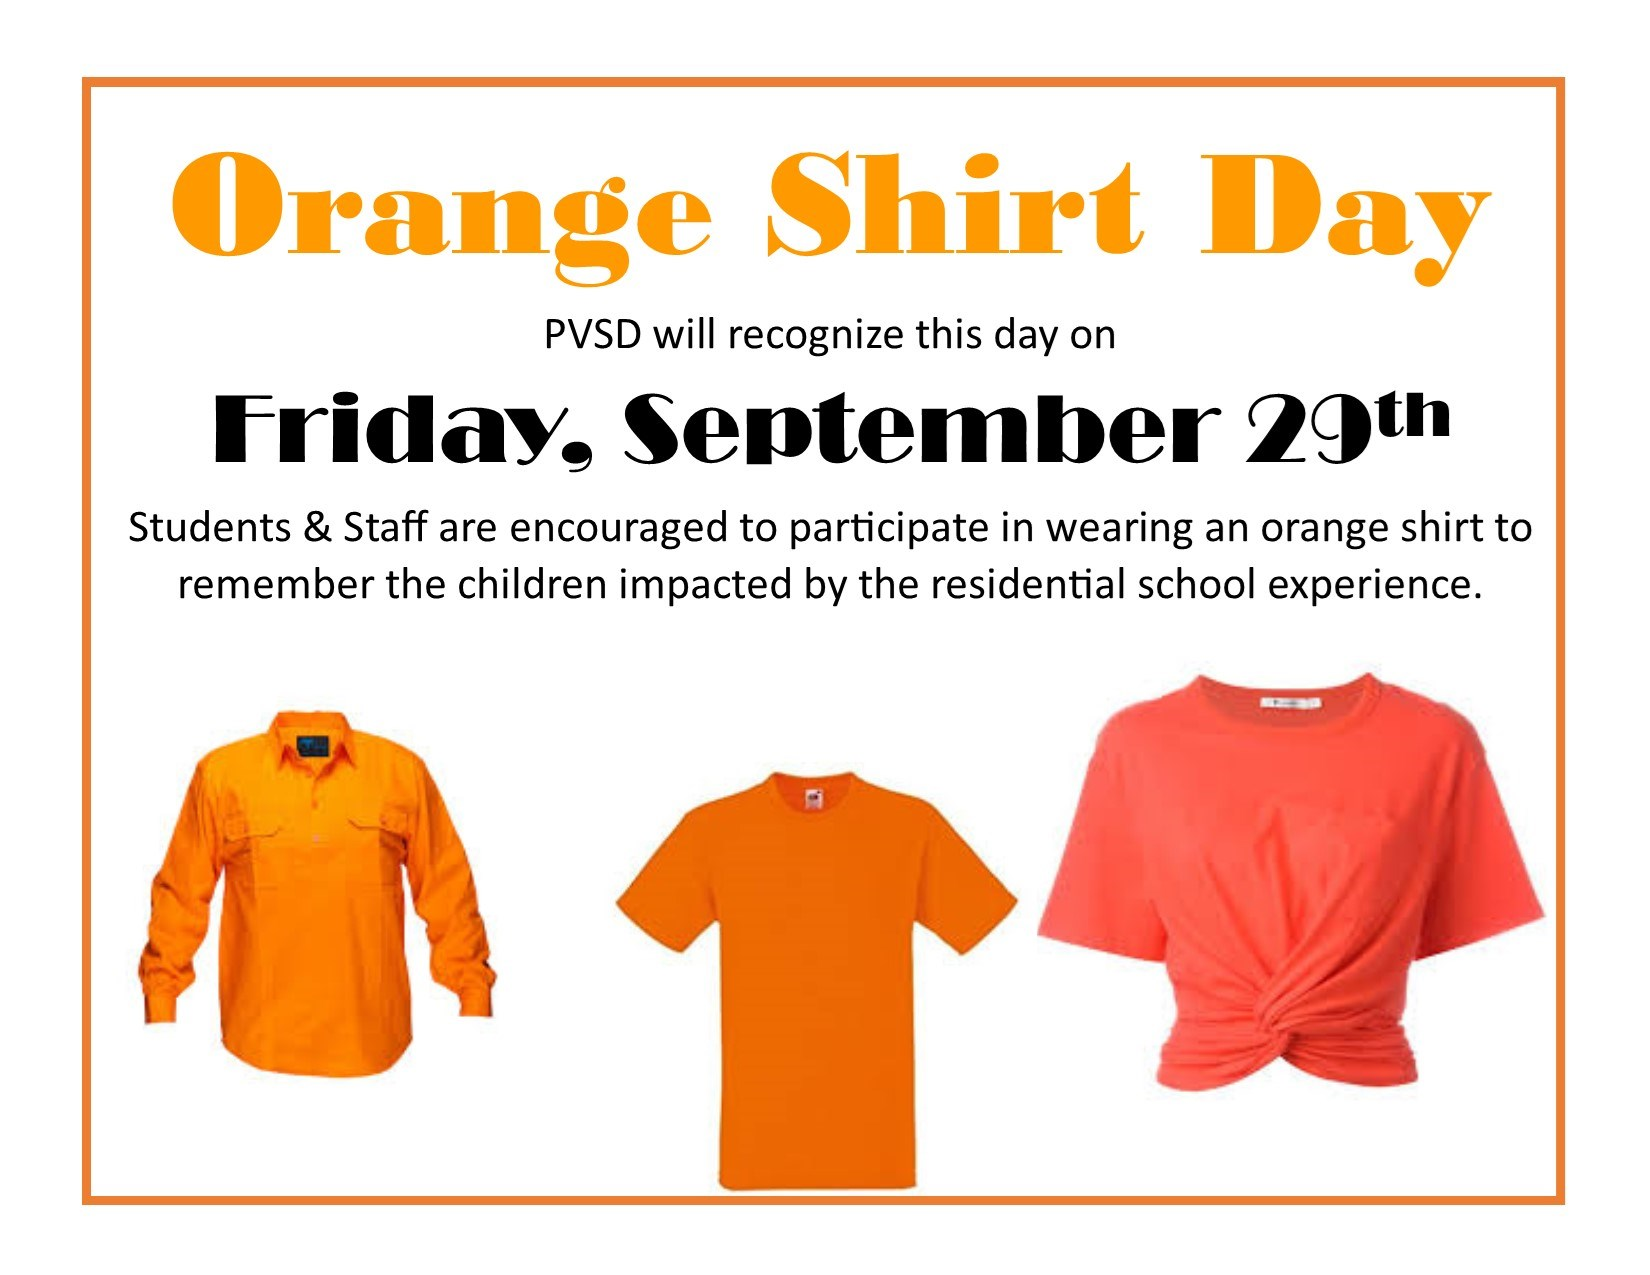 Orange%20shirt%20day.jpg